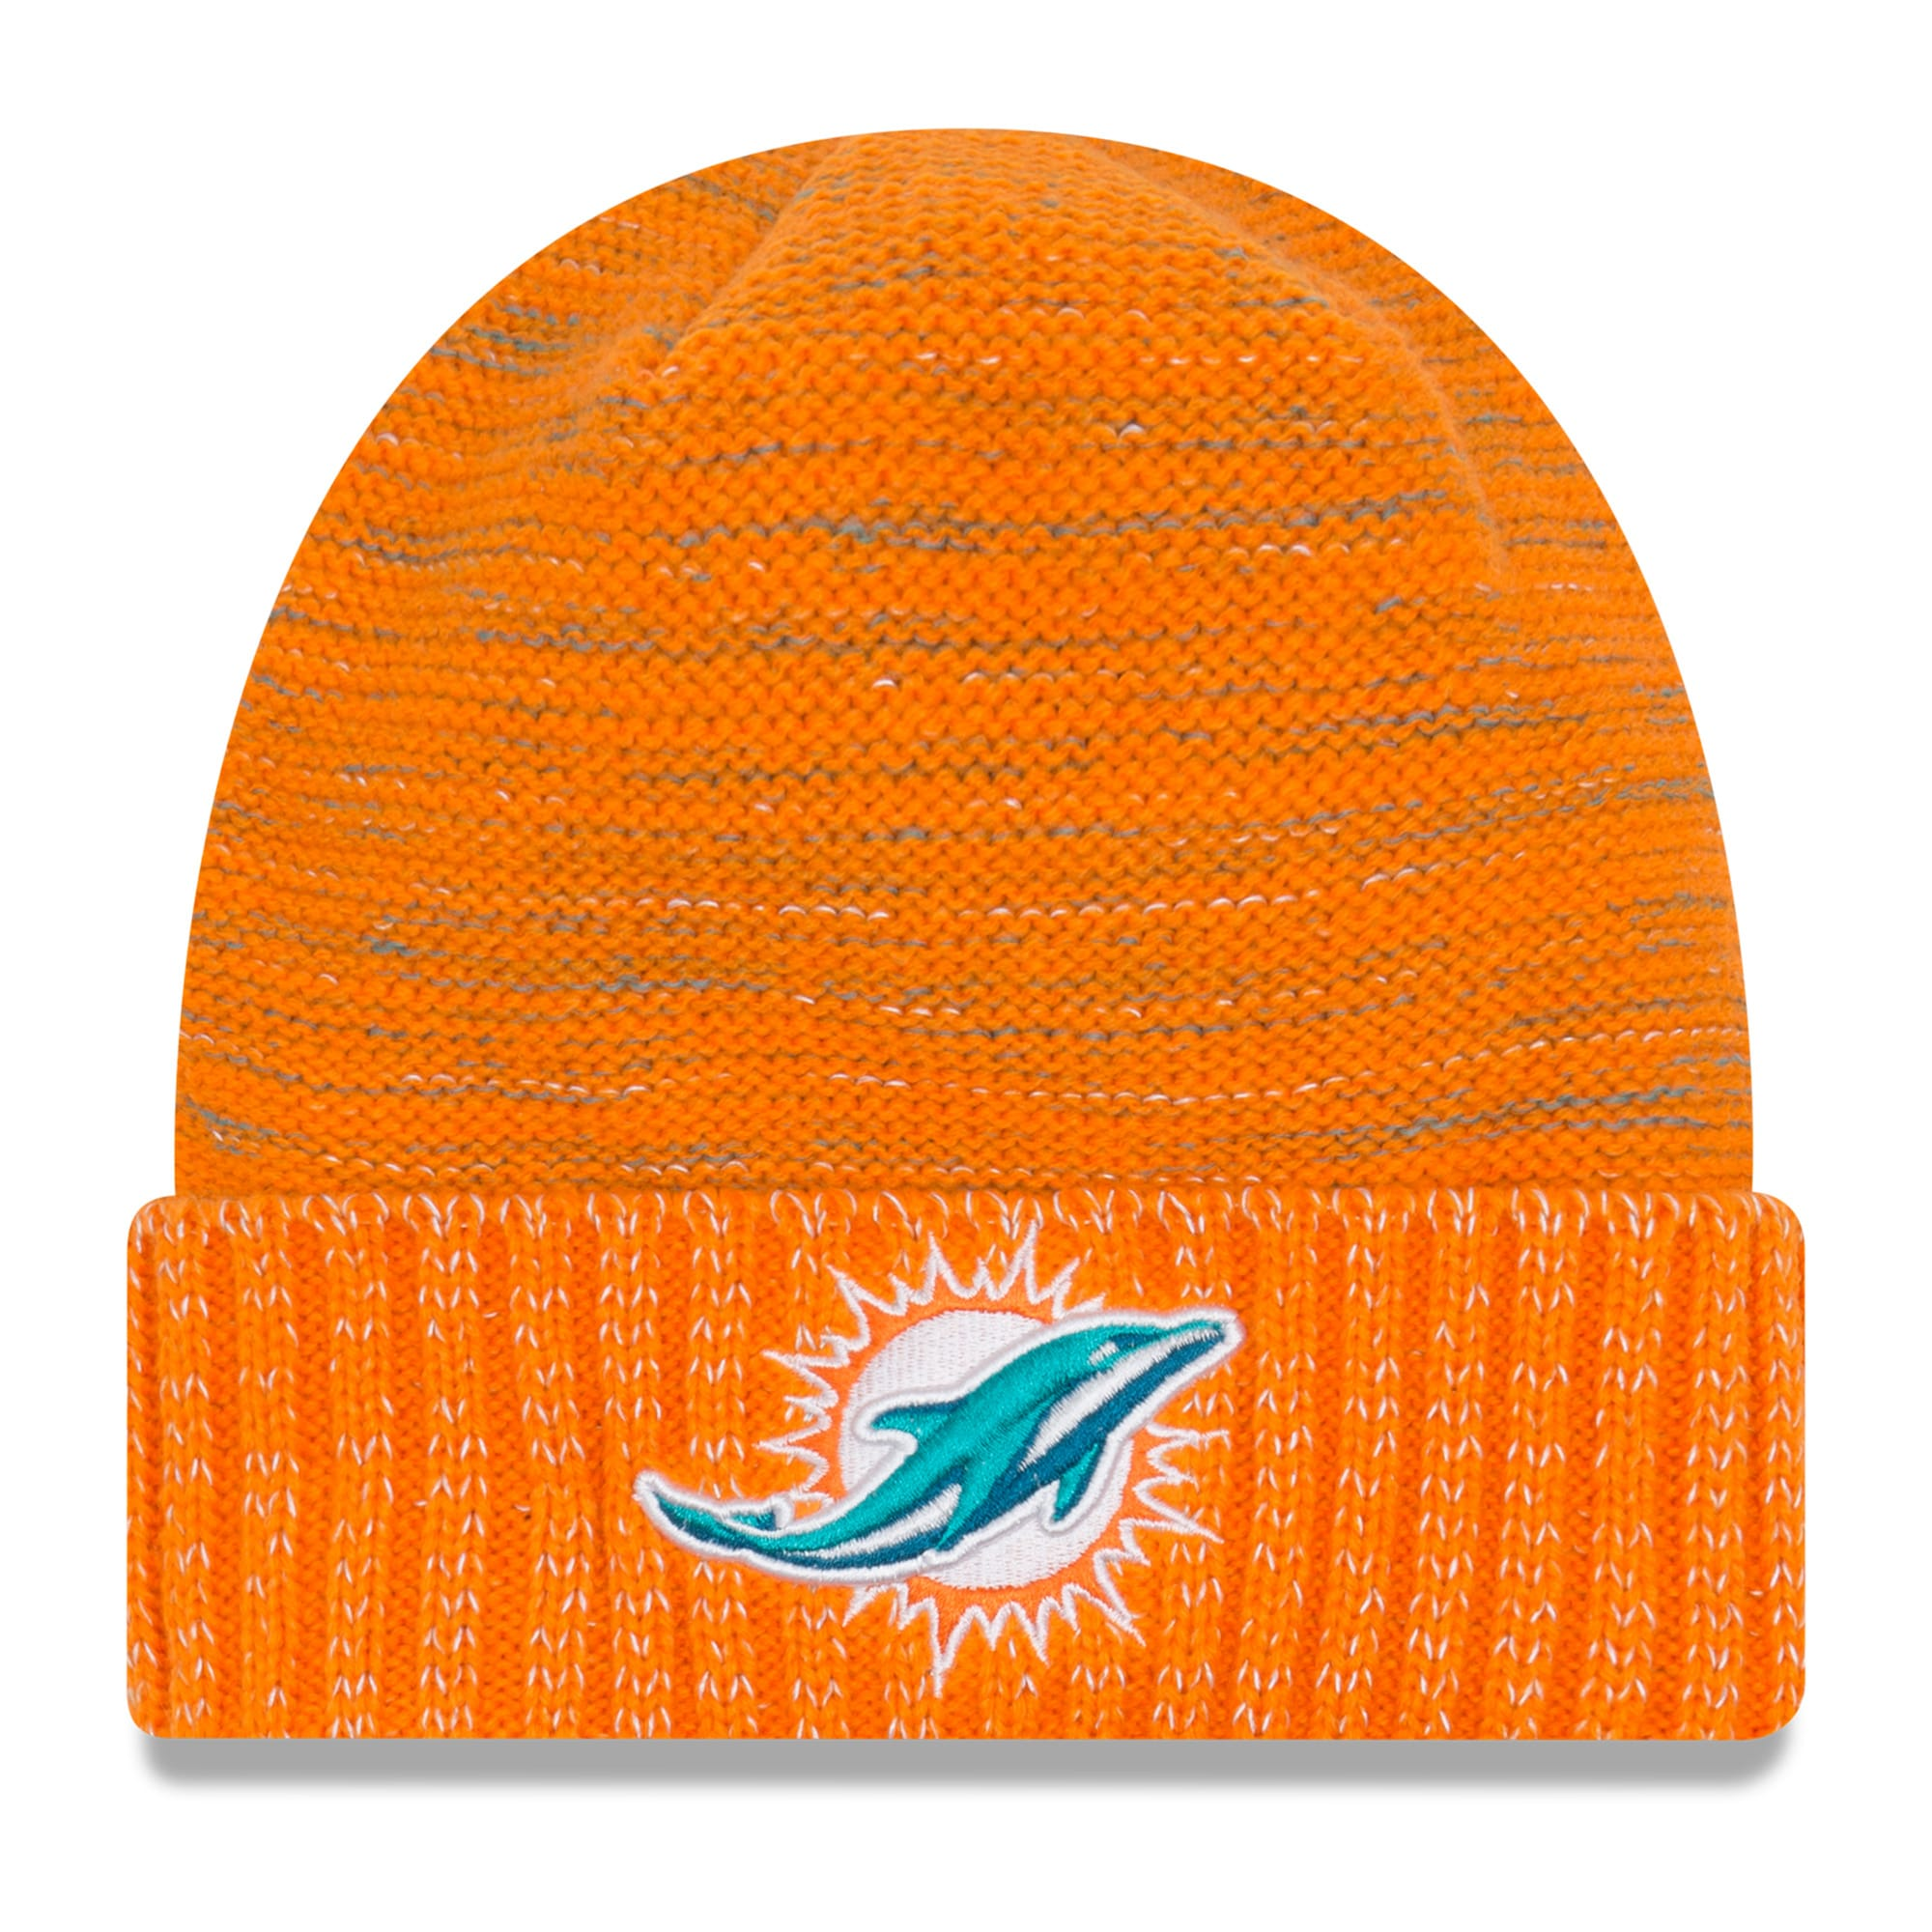 Miami Dolphins New Era 2017 Color Rush Knit Hat - Orange